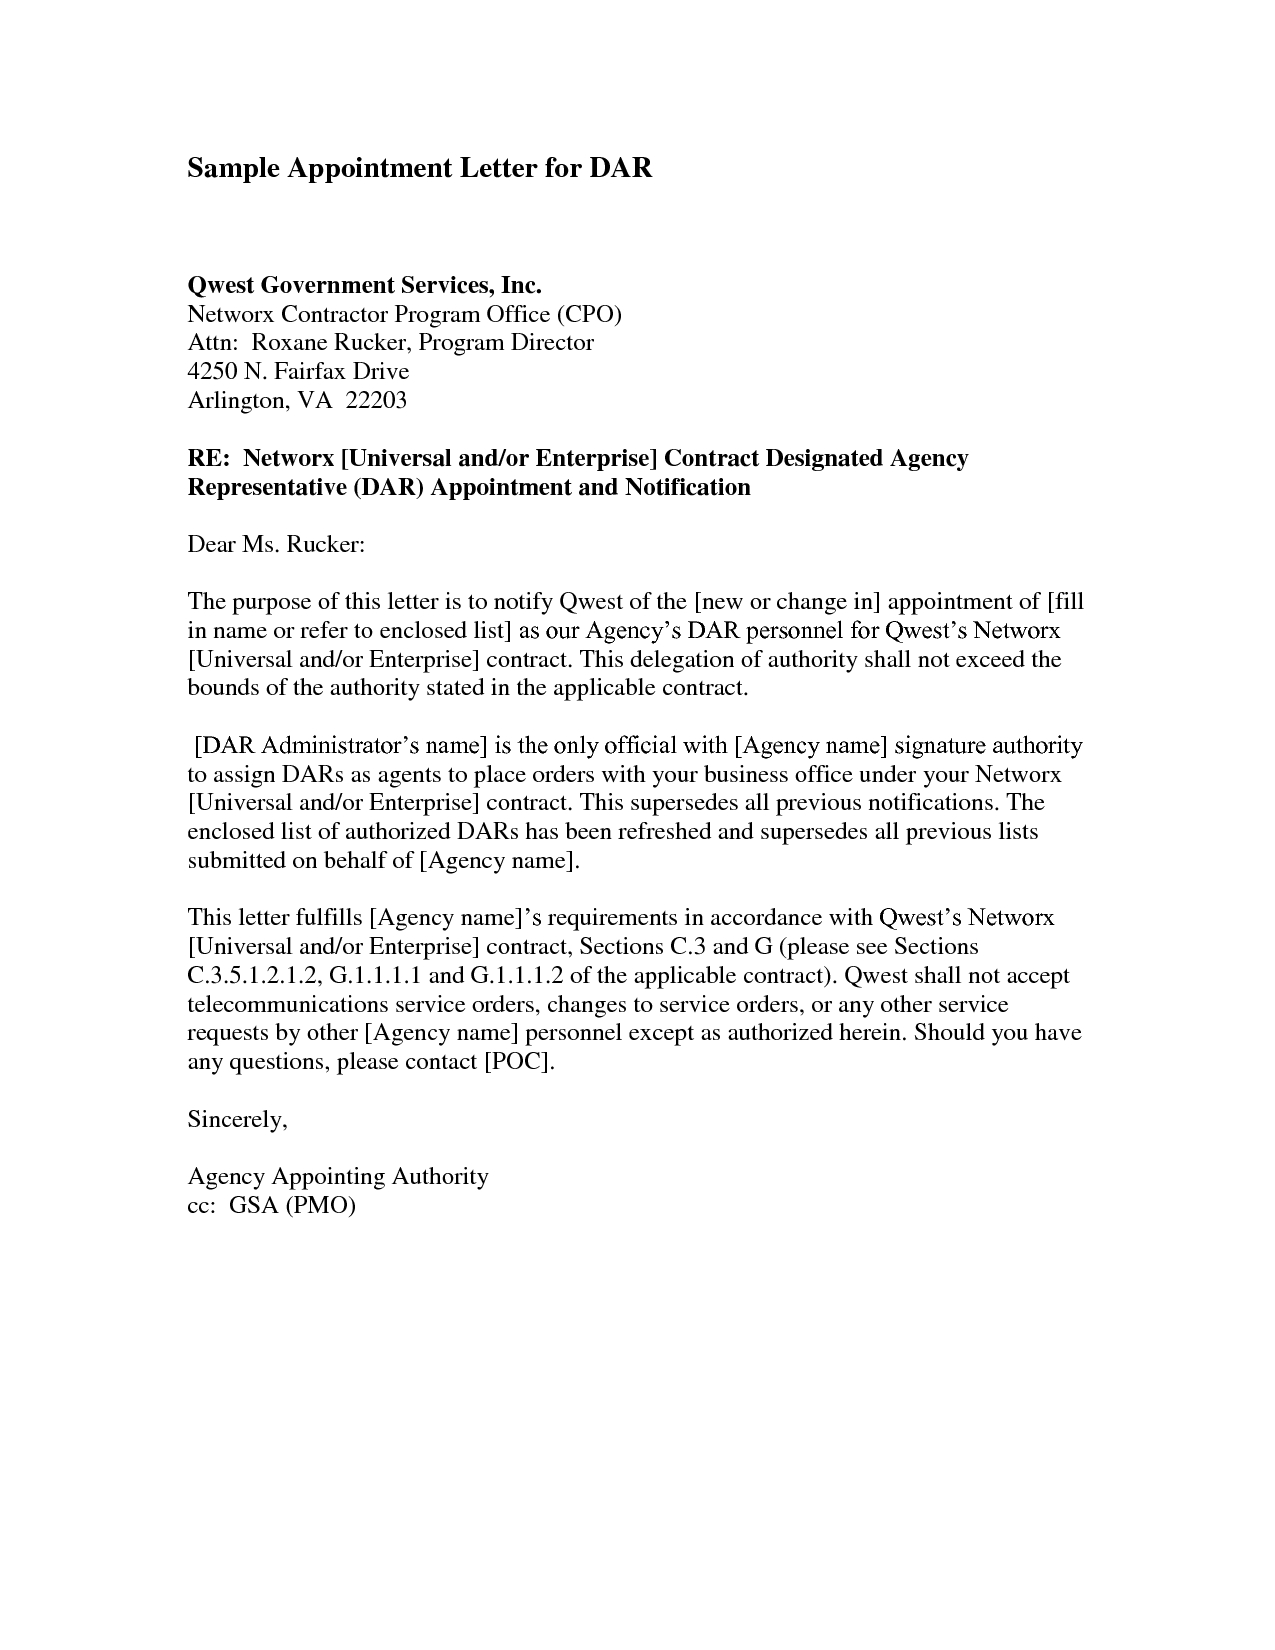 Property Management Proposal Letter Template - Trustee Appointment Letter Director Trustee is Appointed or